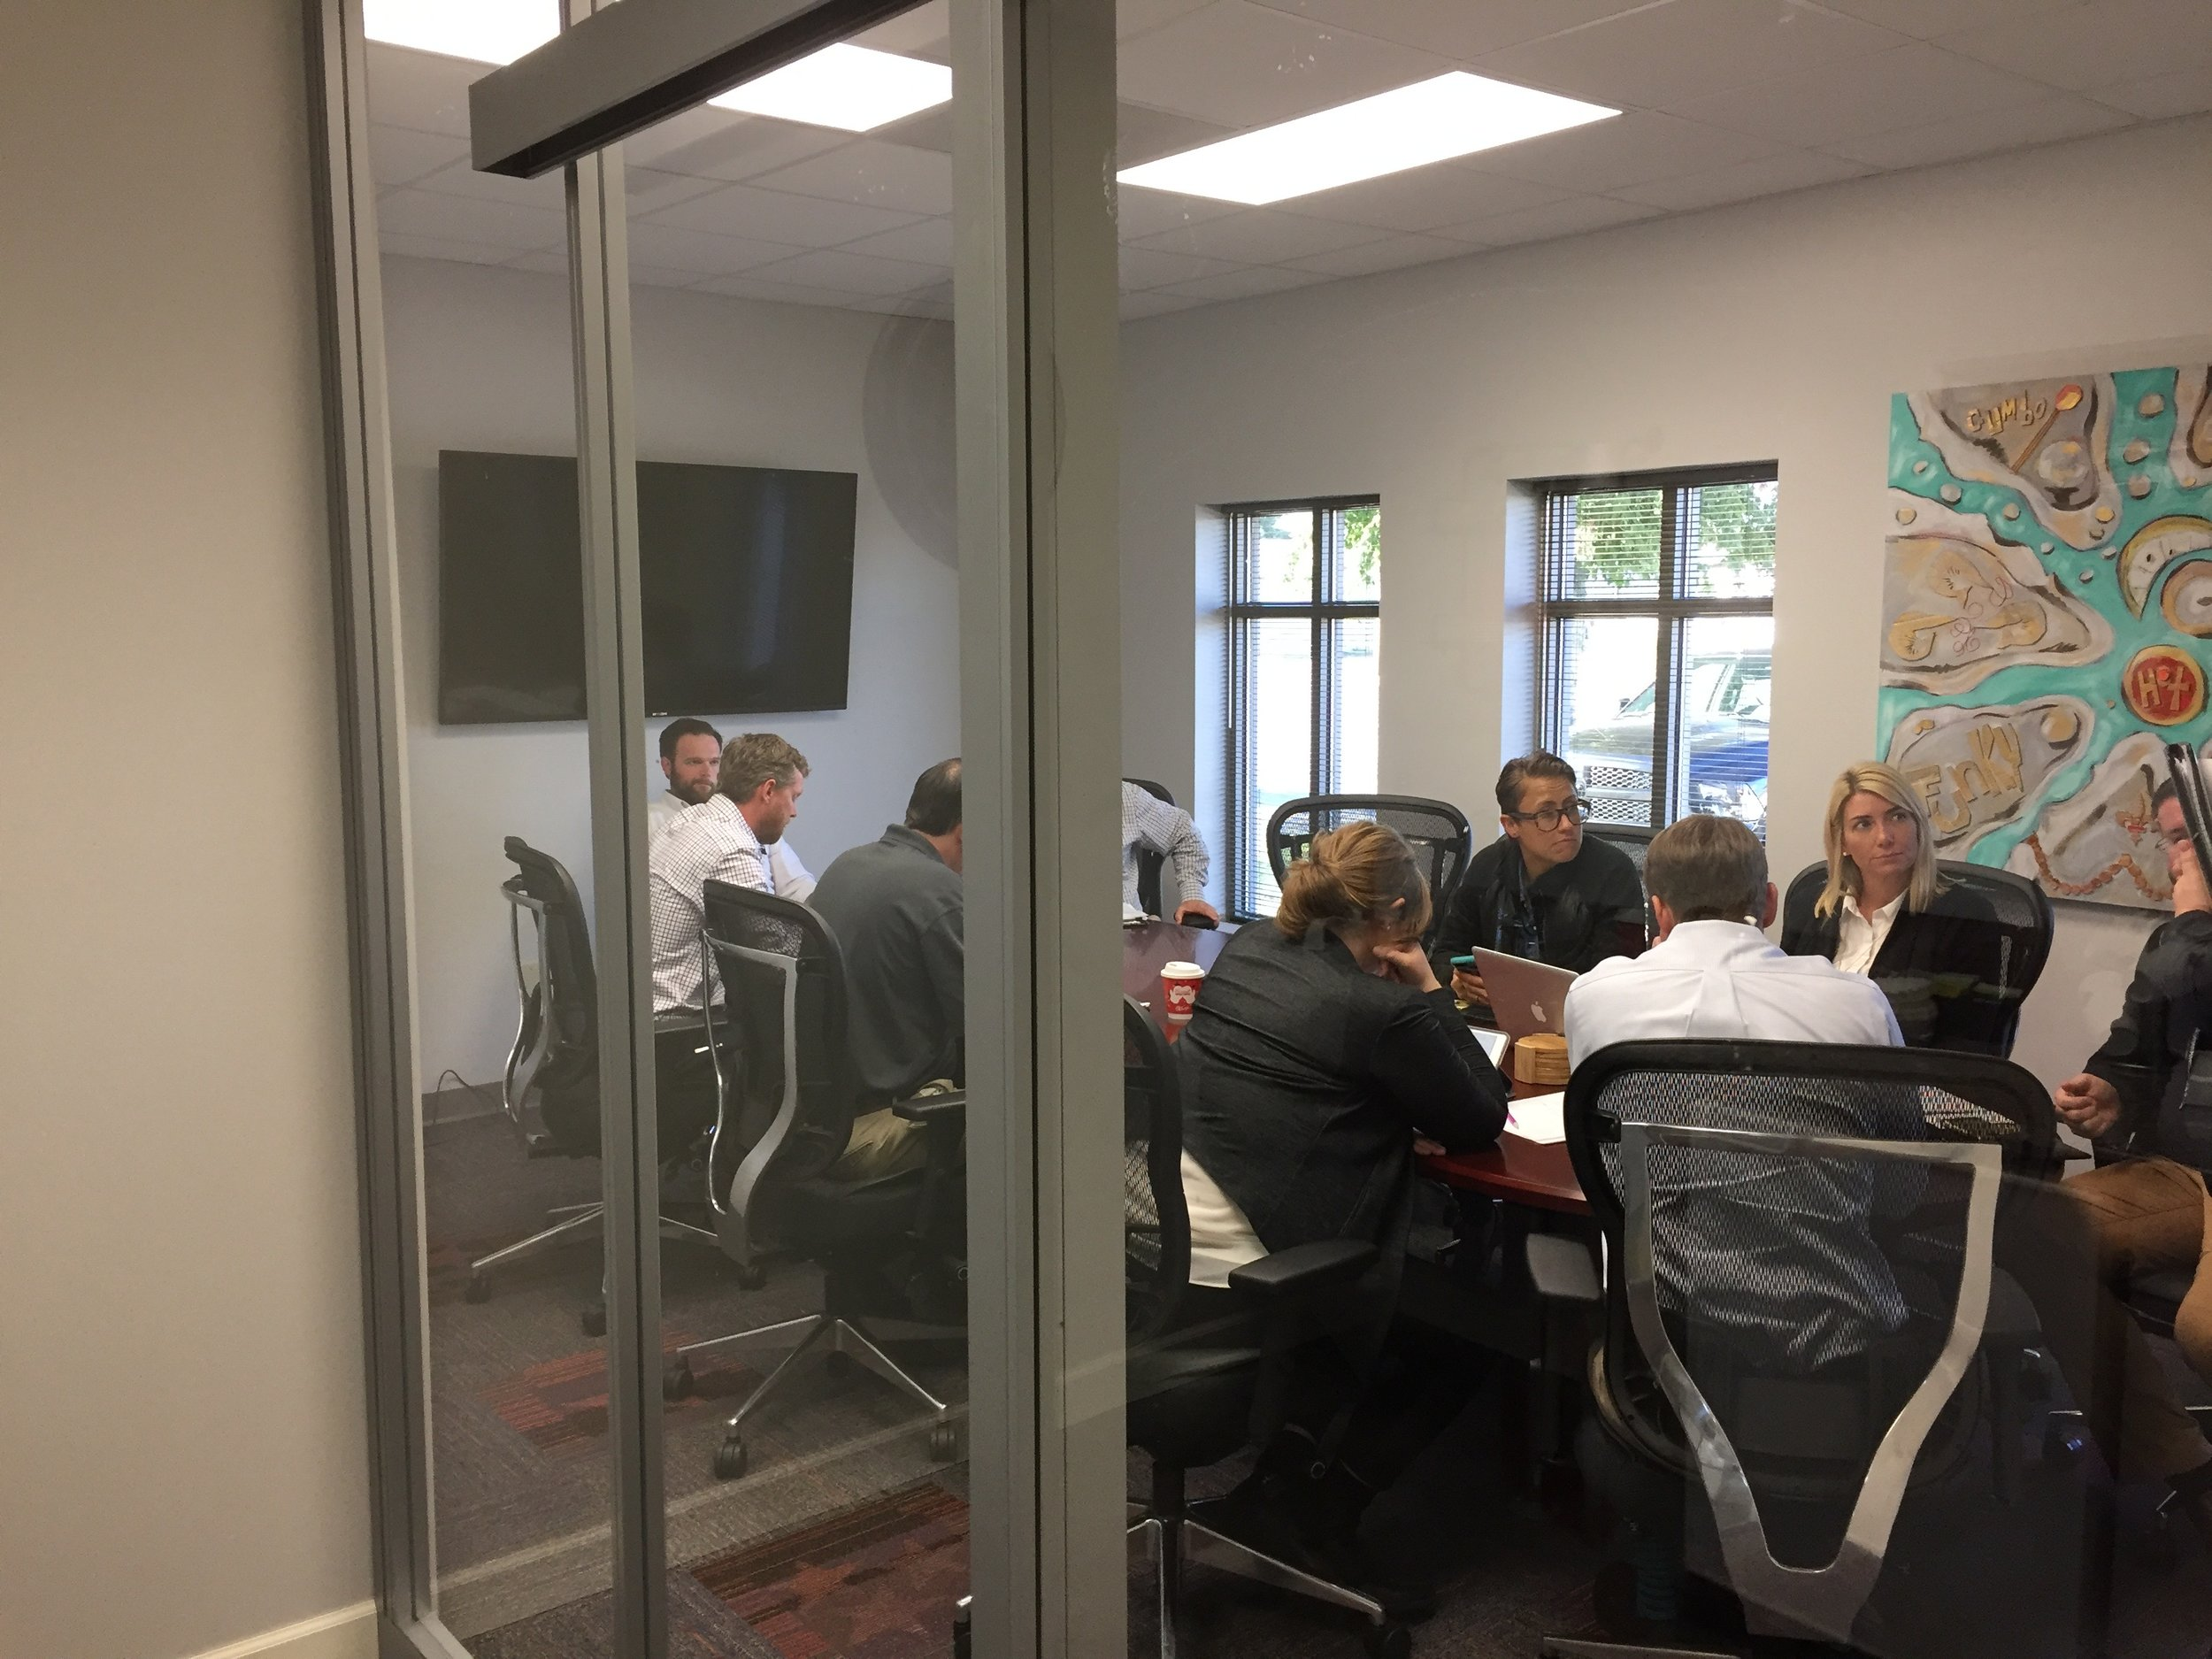 Another breakout session in our large conference room.